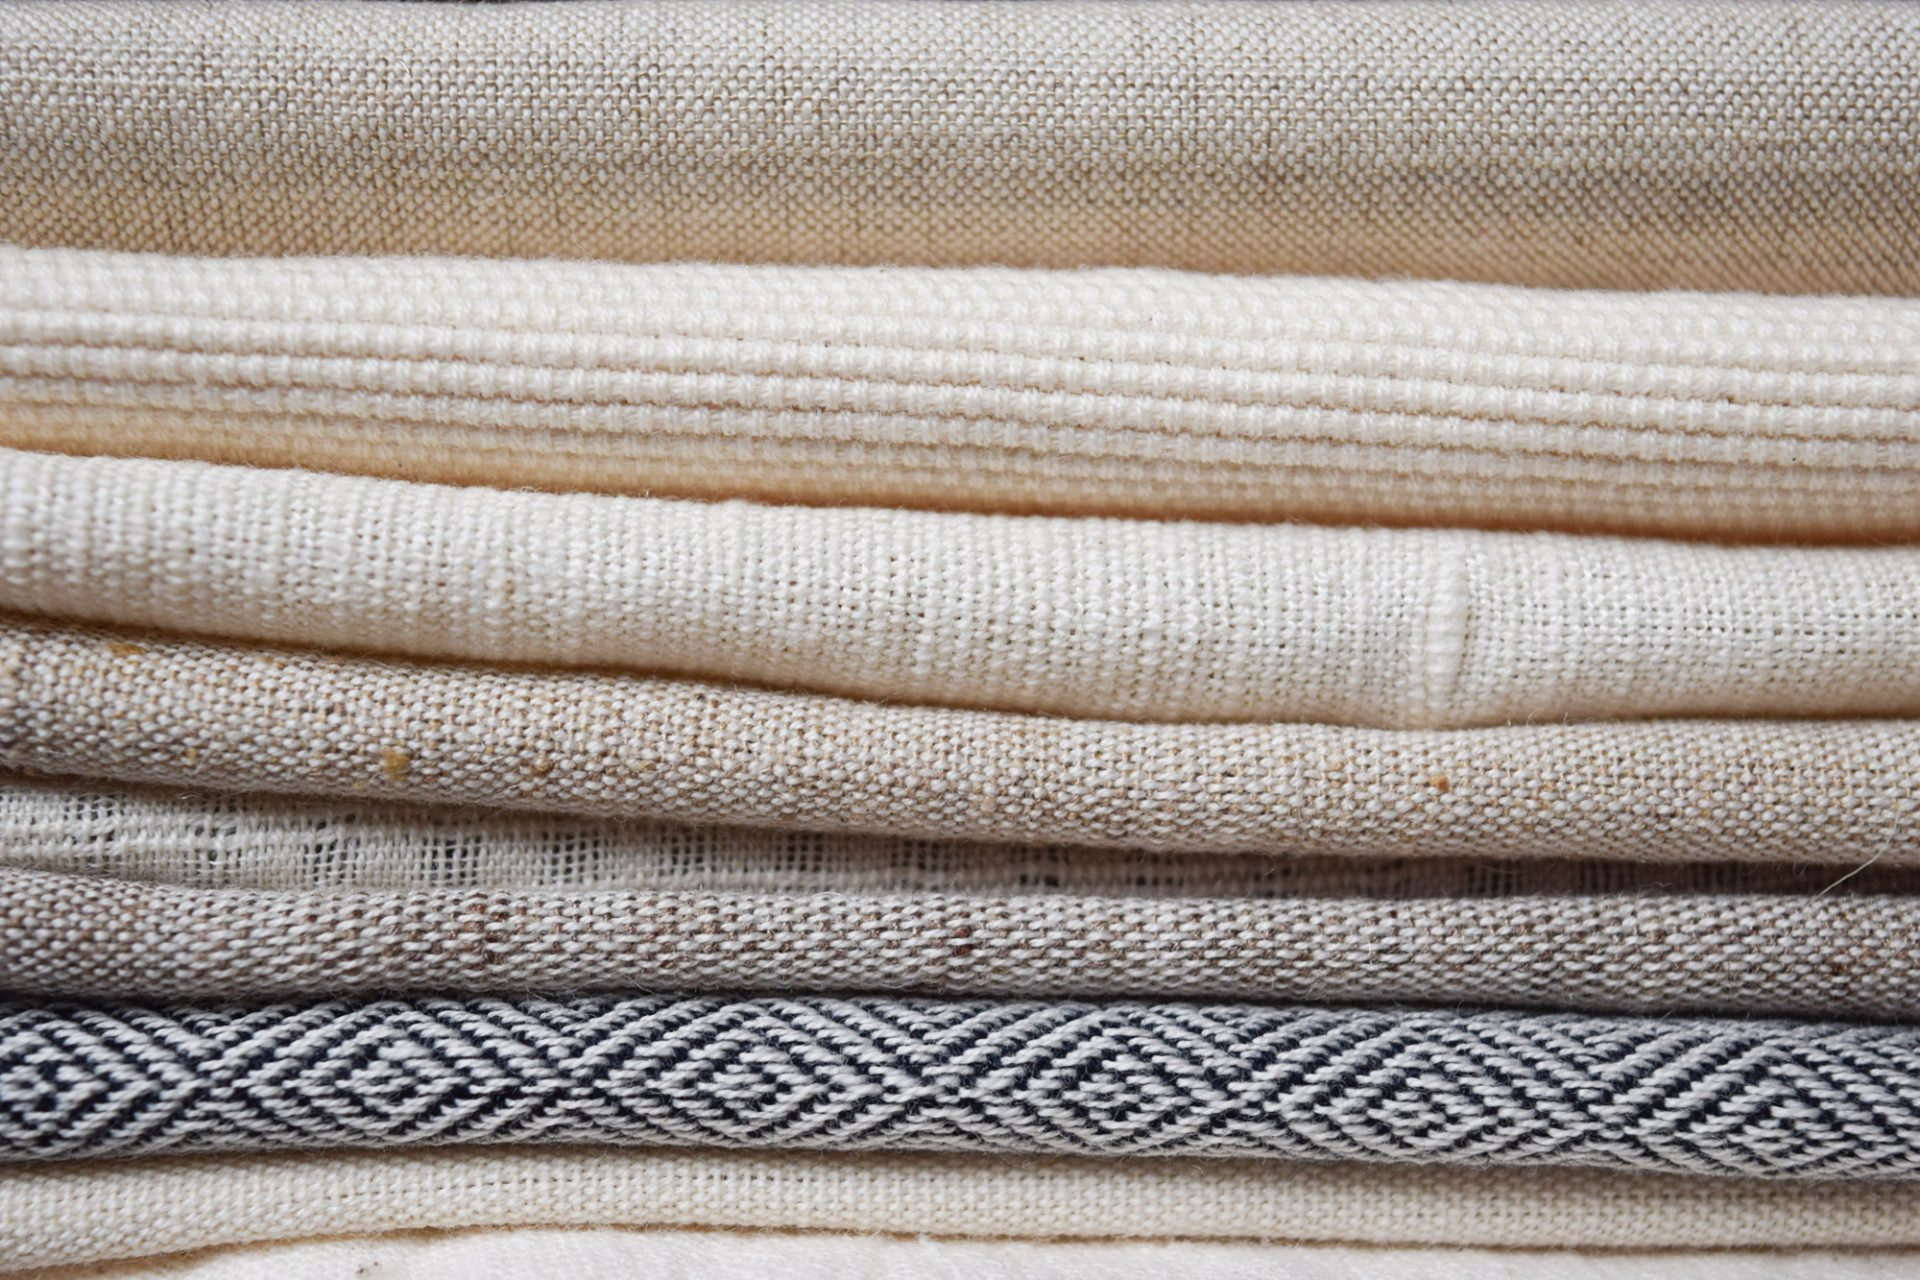 Cotton and Wool khadi fabrics.